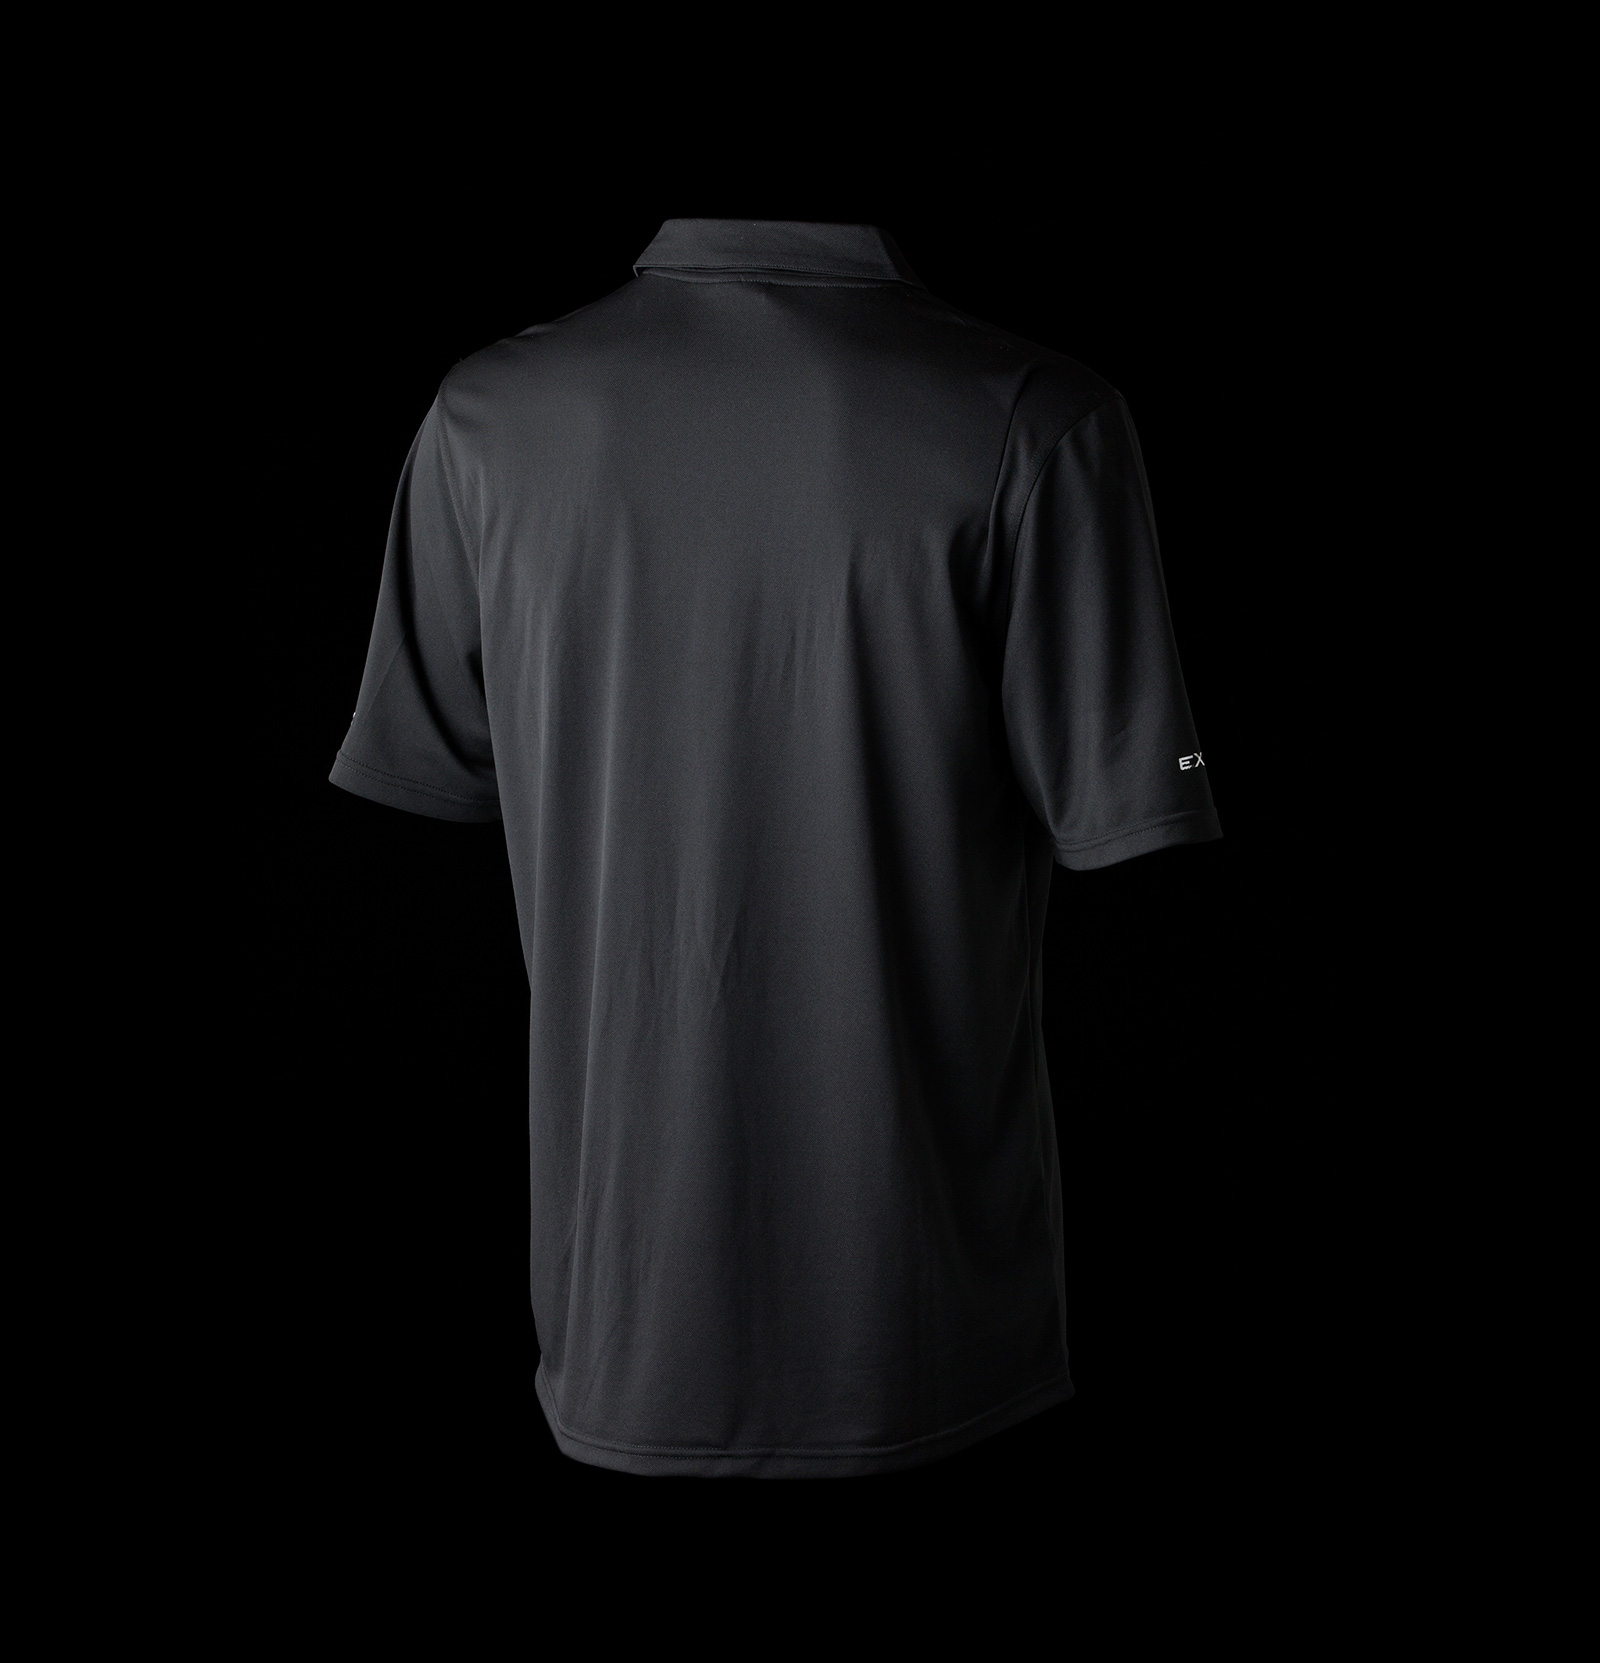 Excel-Polo-Shirt-Promo-42